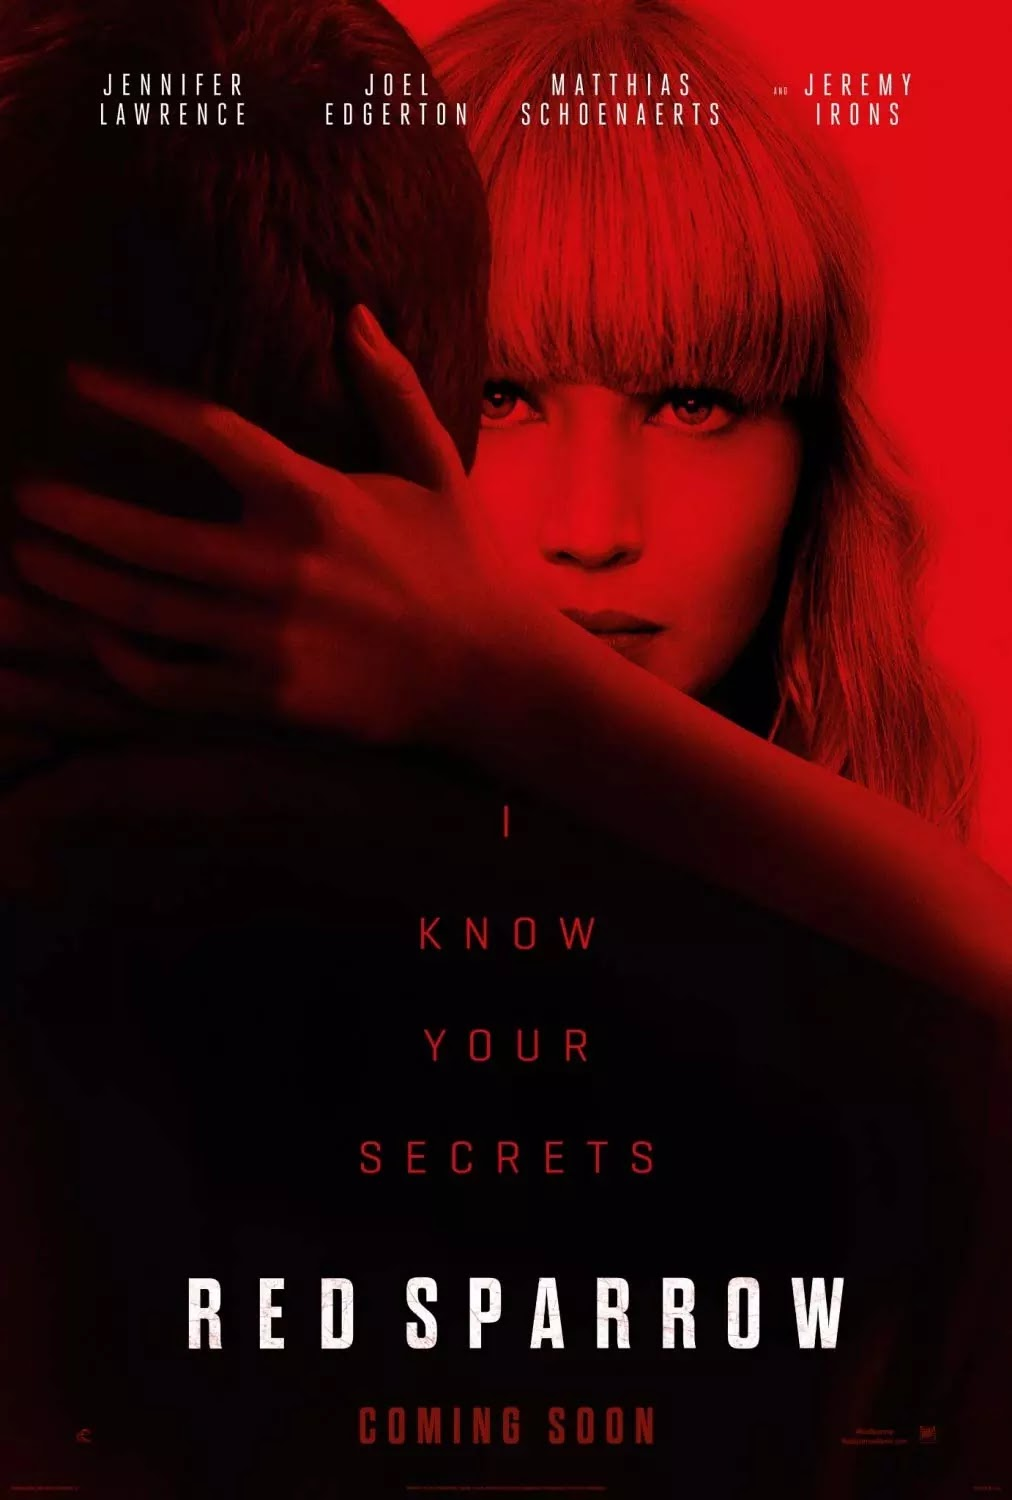 download red sparrow 2018 720p + 1080p bluray x264 + x265 hevc | top